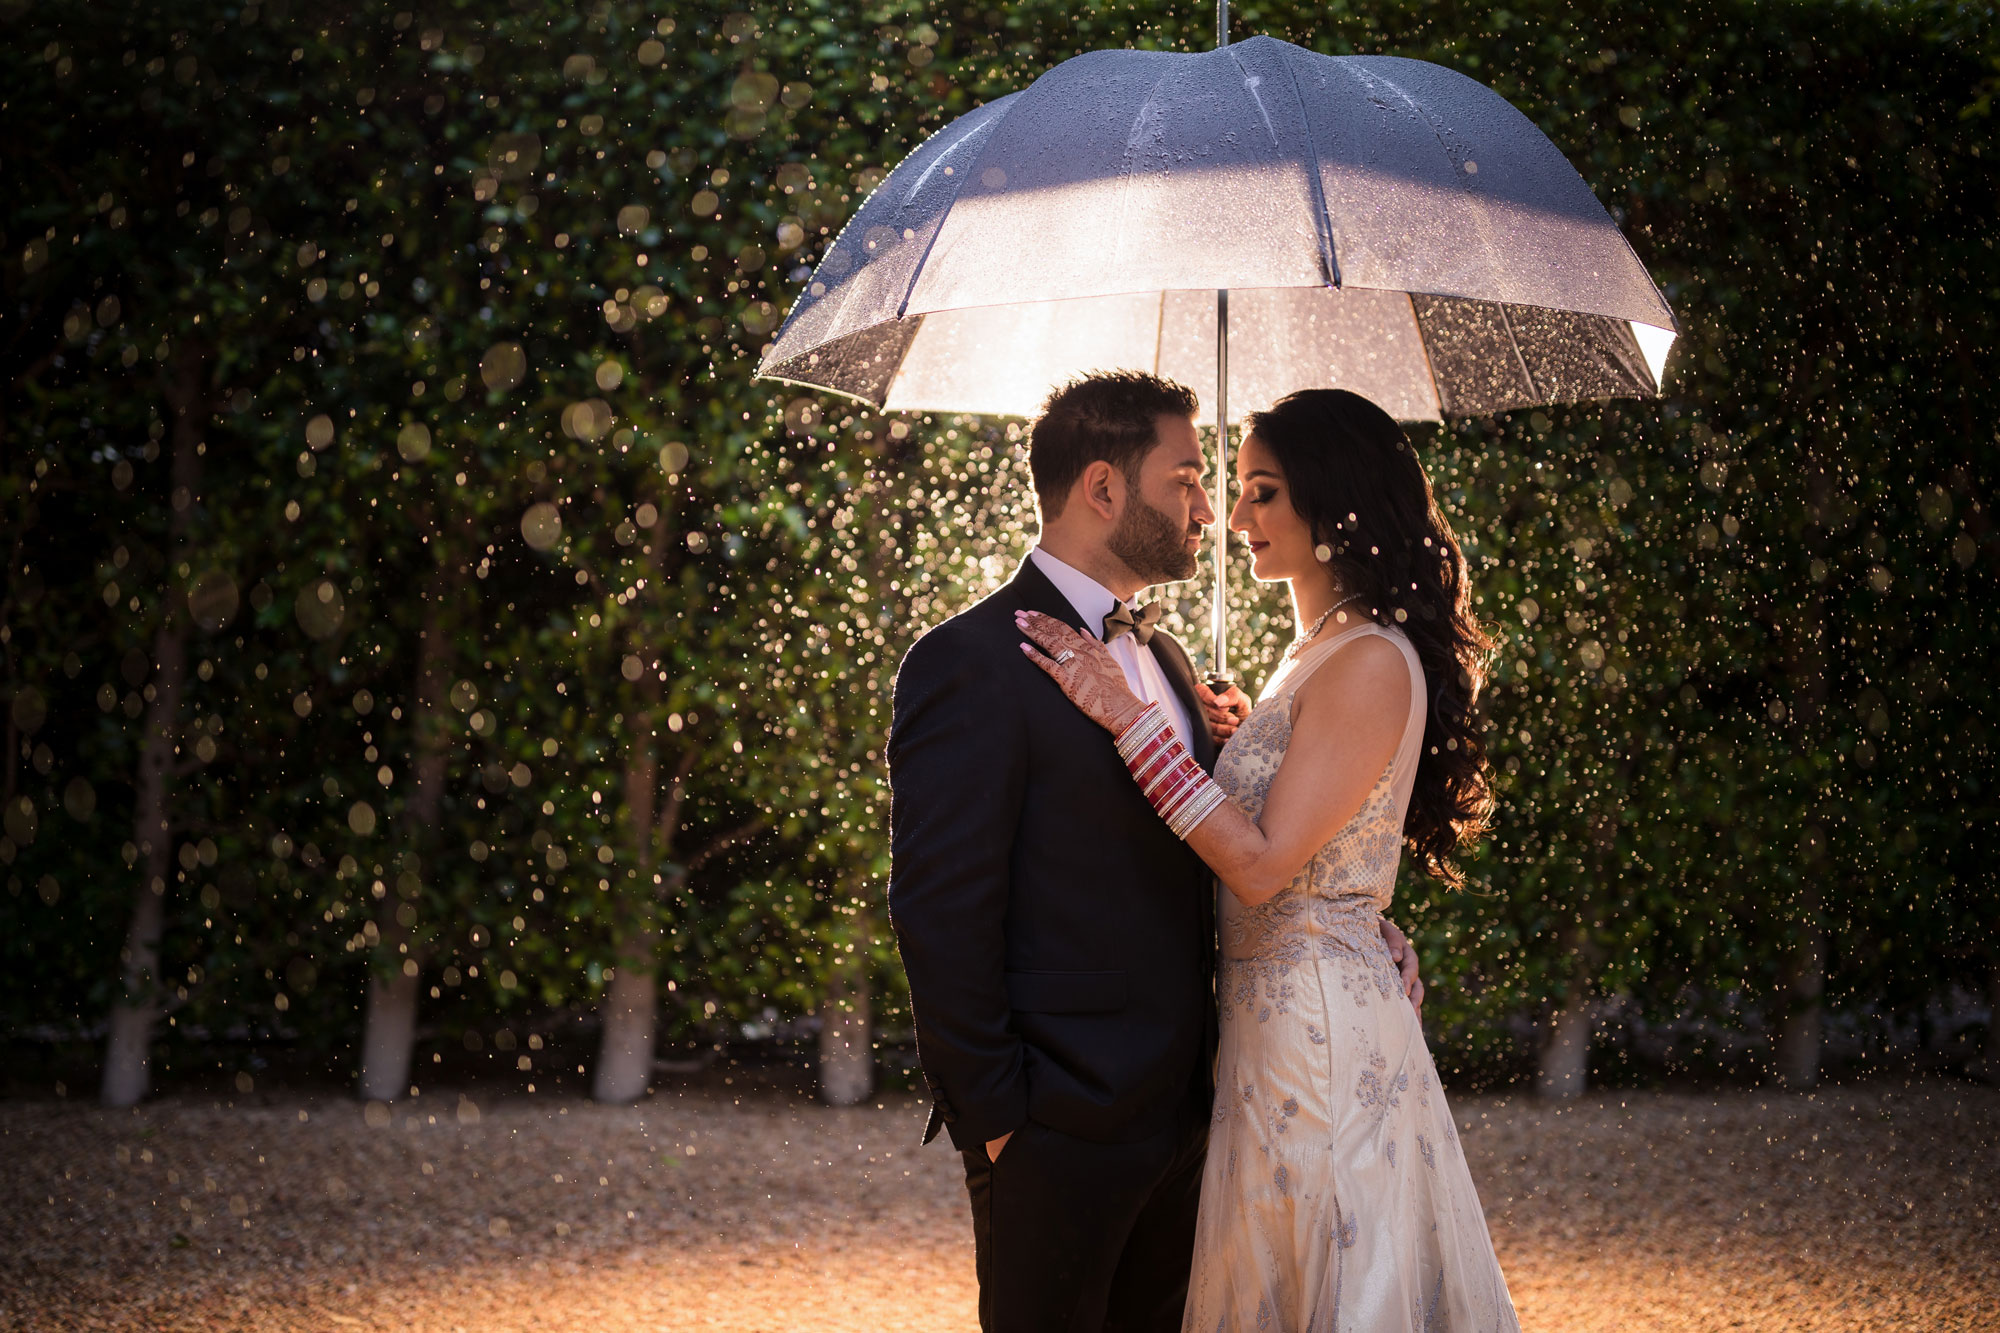 Softboxes are Best for Weddings